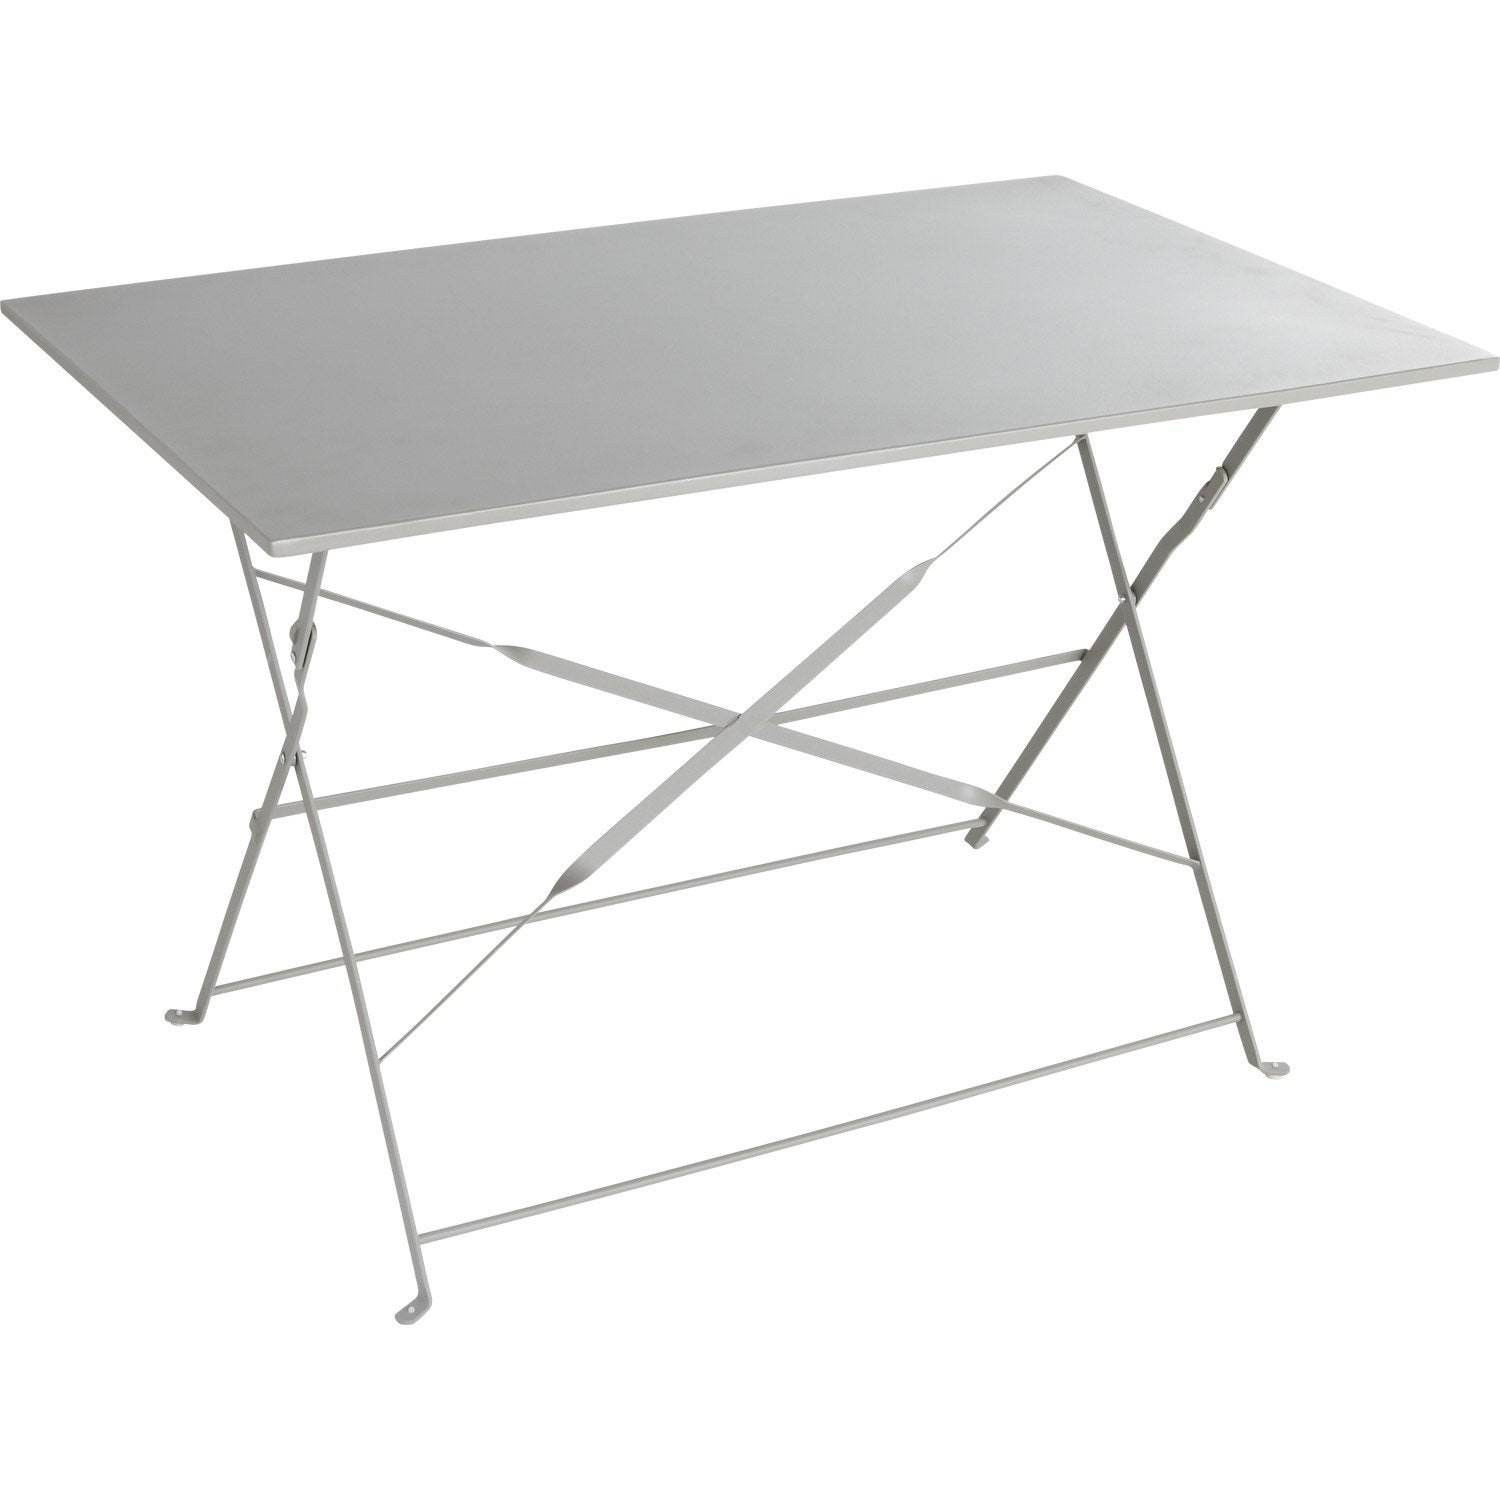 Table de jardin naterial flore rectangulaire gris 4 for Table de jardin pliante plastique